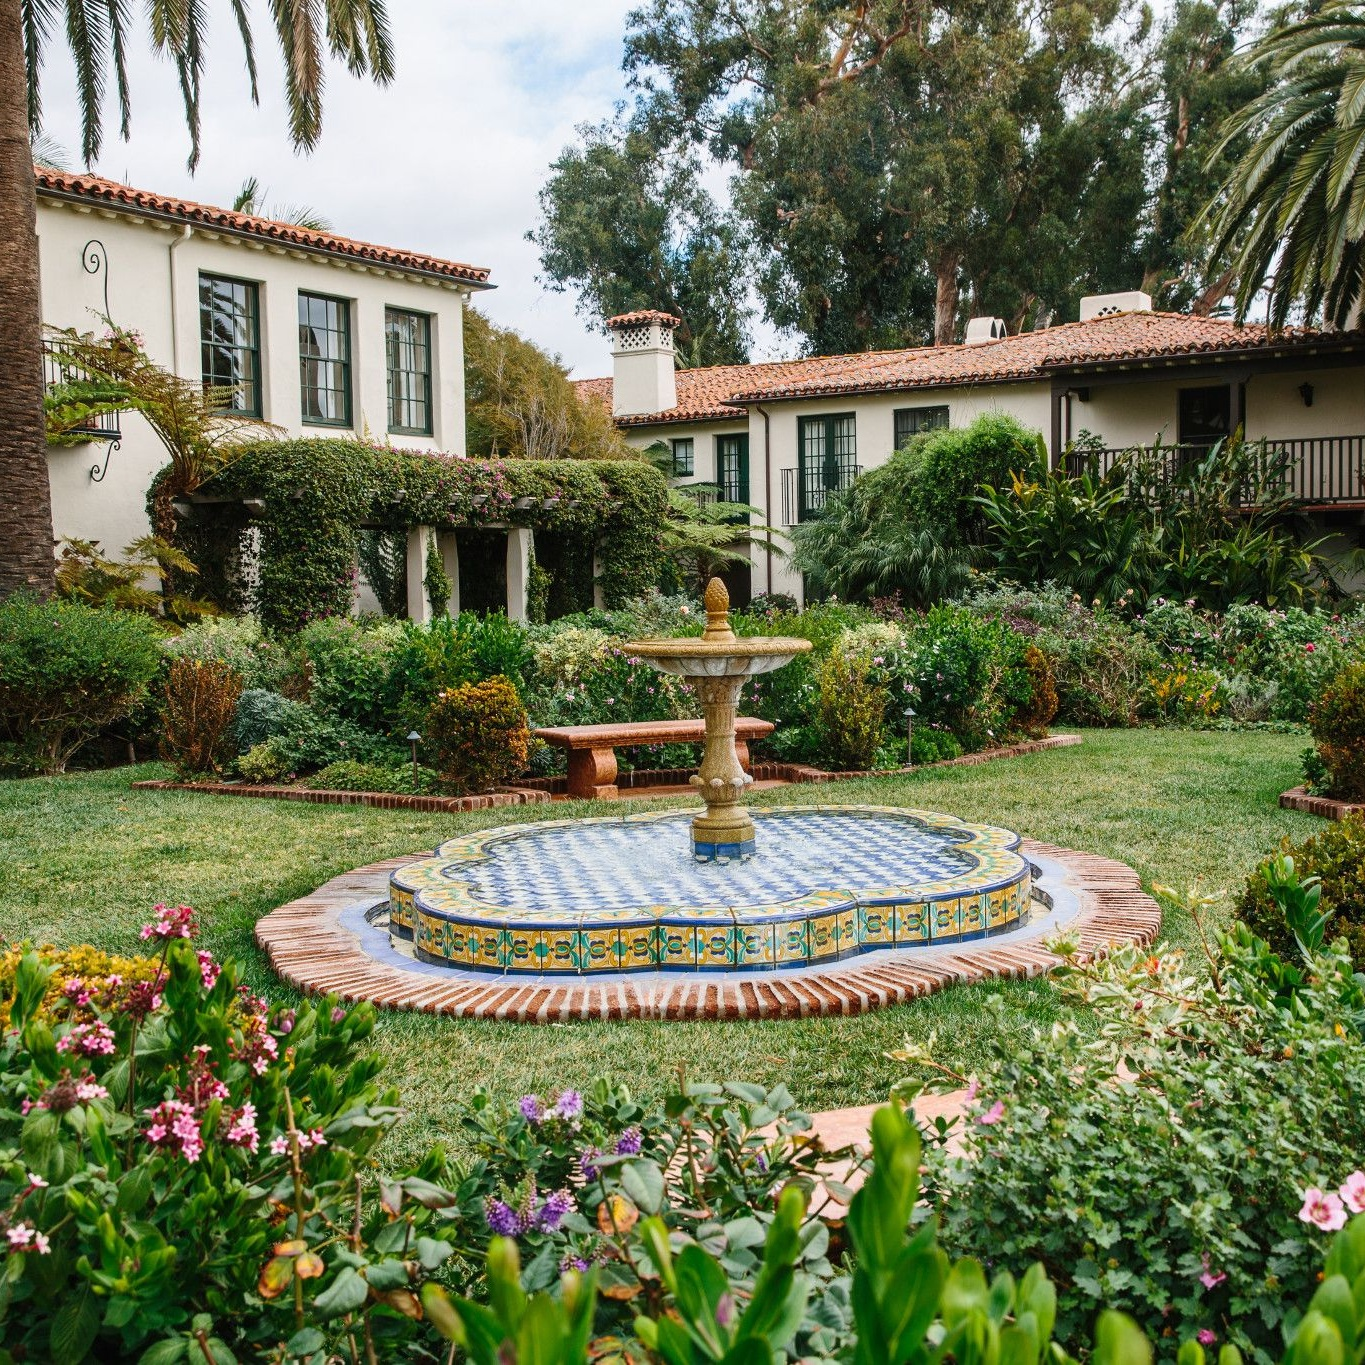 LISTINGS - Check out our most recent listings. Our inventory of some of the most desired properties in Santa Barbara is ever changing. Drop in periodically to see what we have!